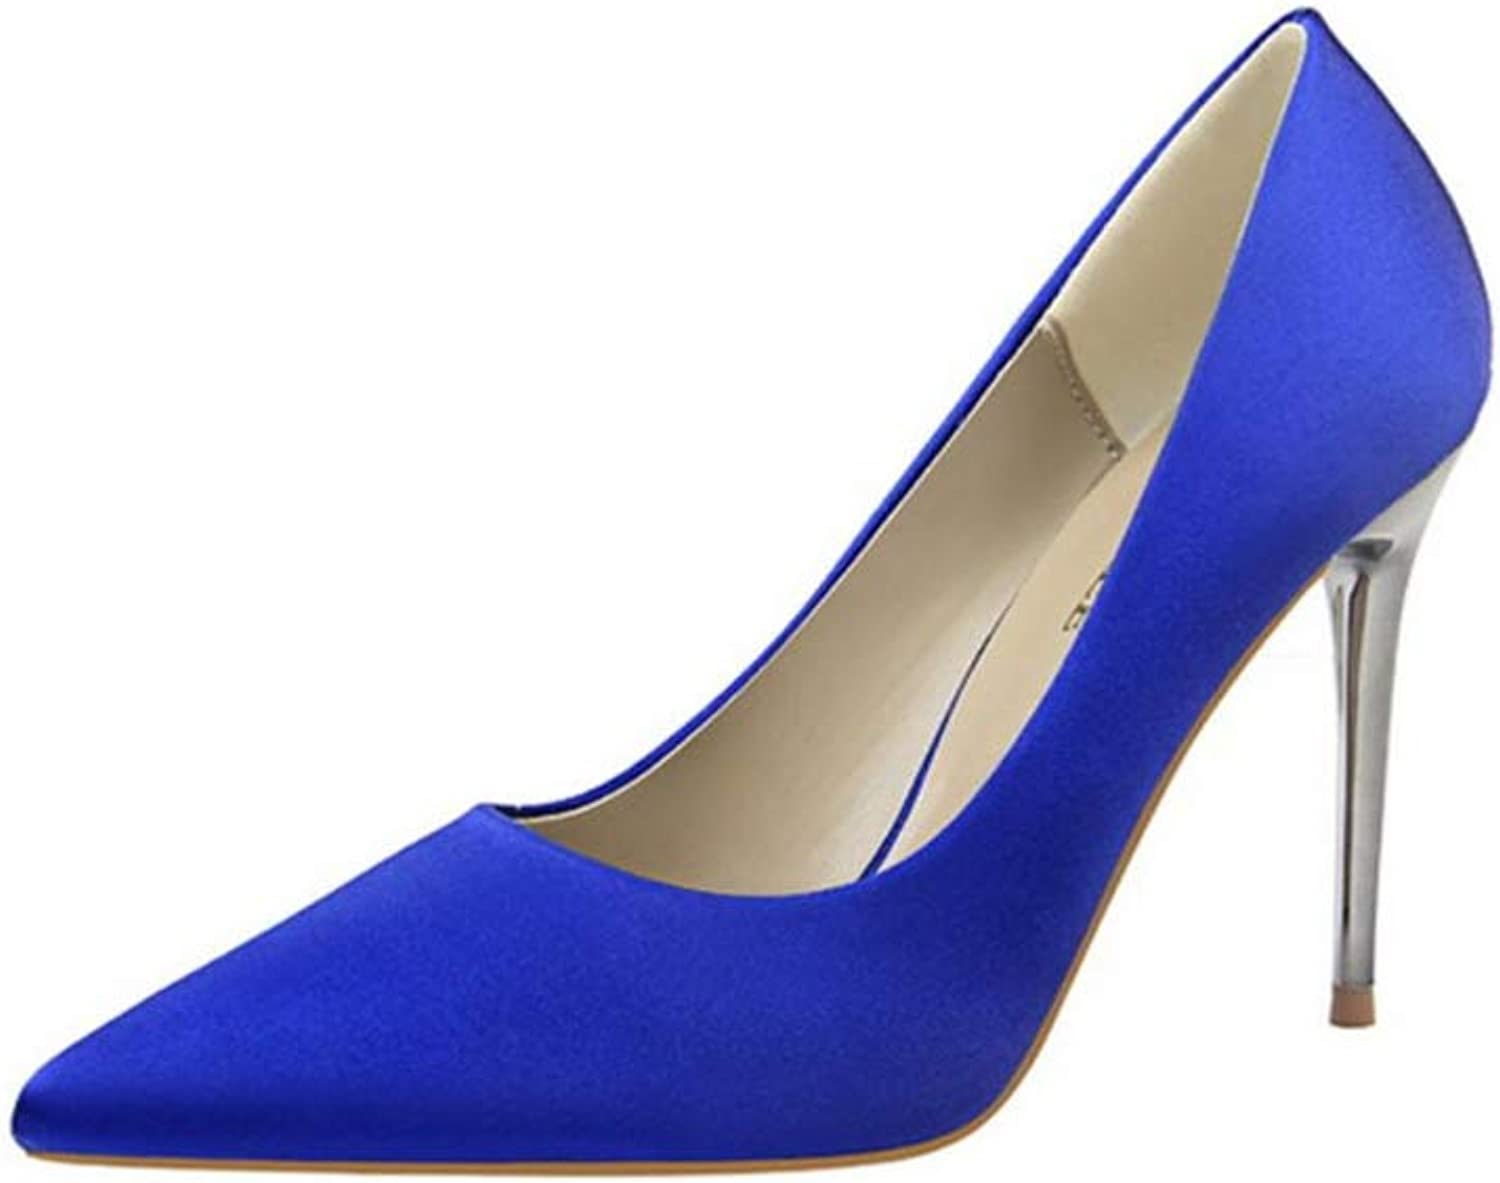 CHENSF Women's Classic Fashion Pointed high Heels